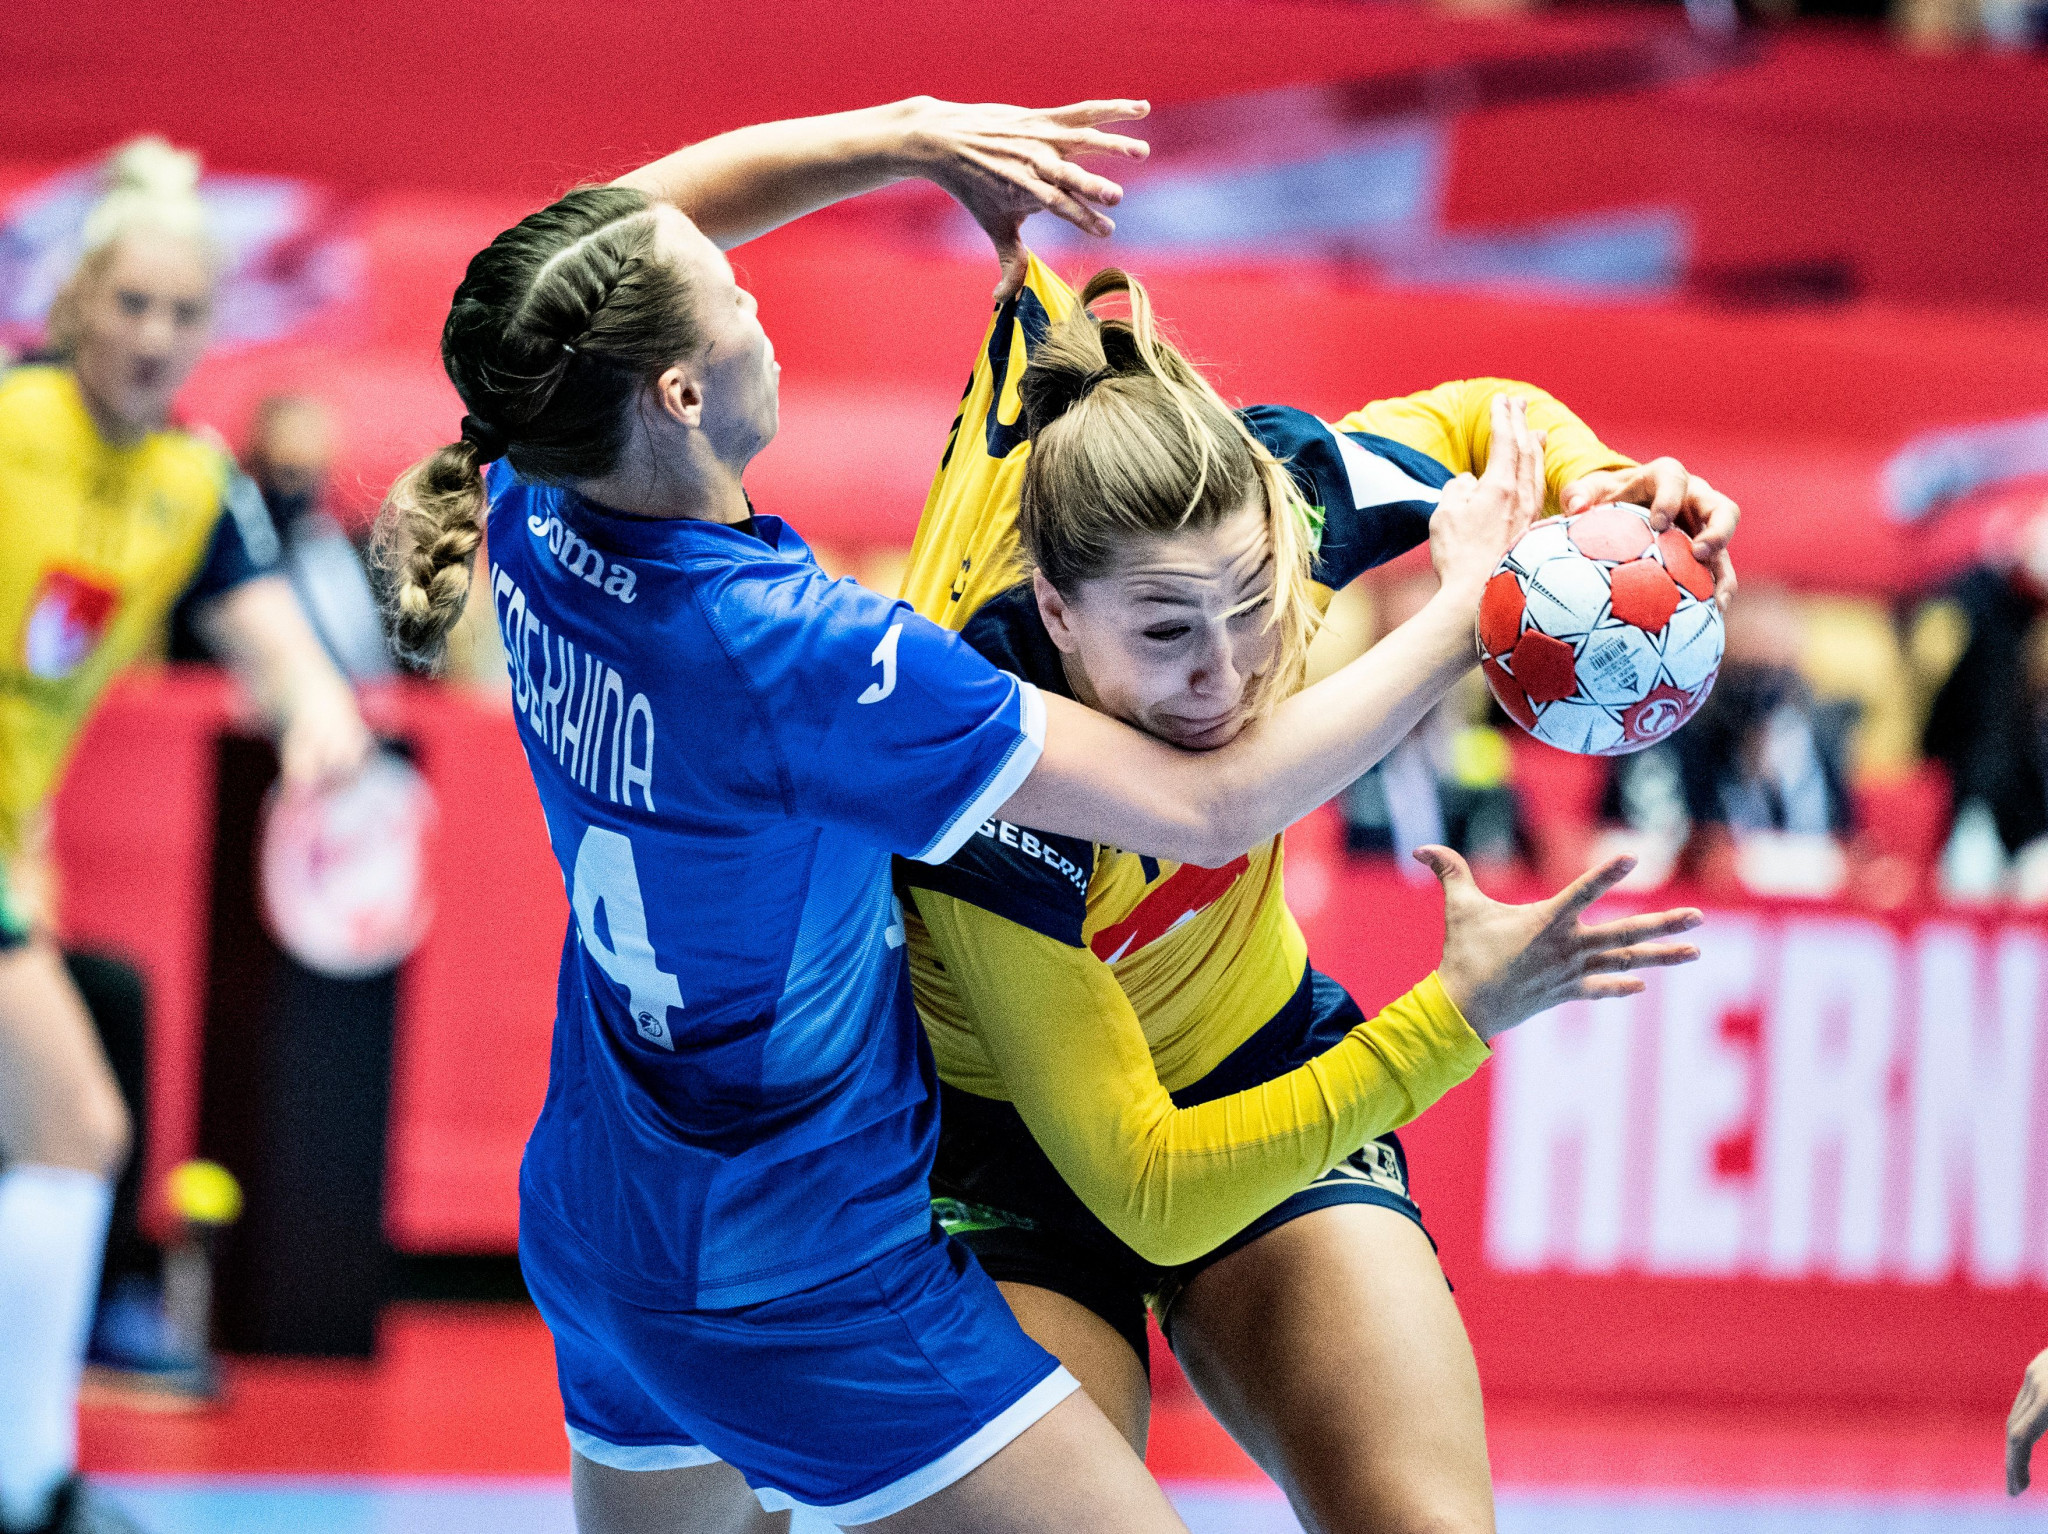 Czech Republic eliminated from European Women's Handball Championship after late loss to Spain